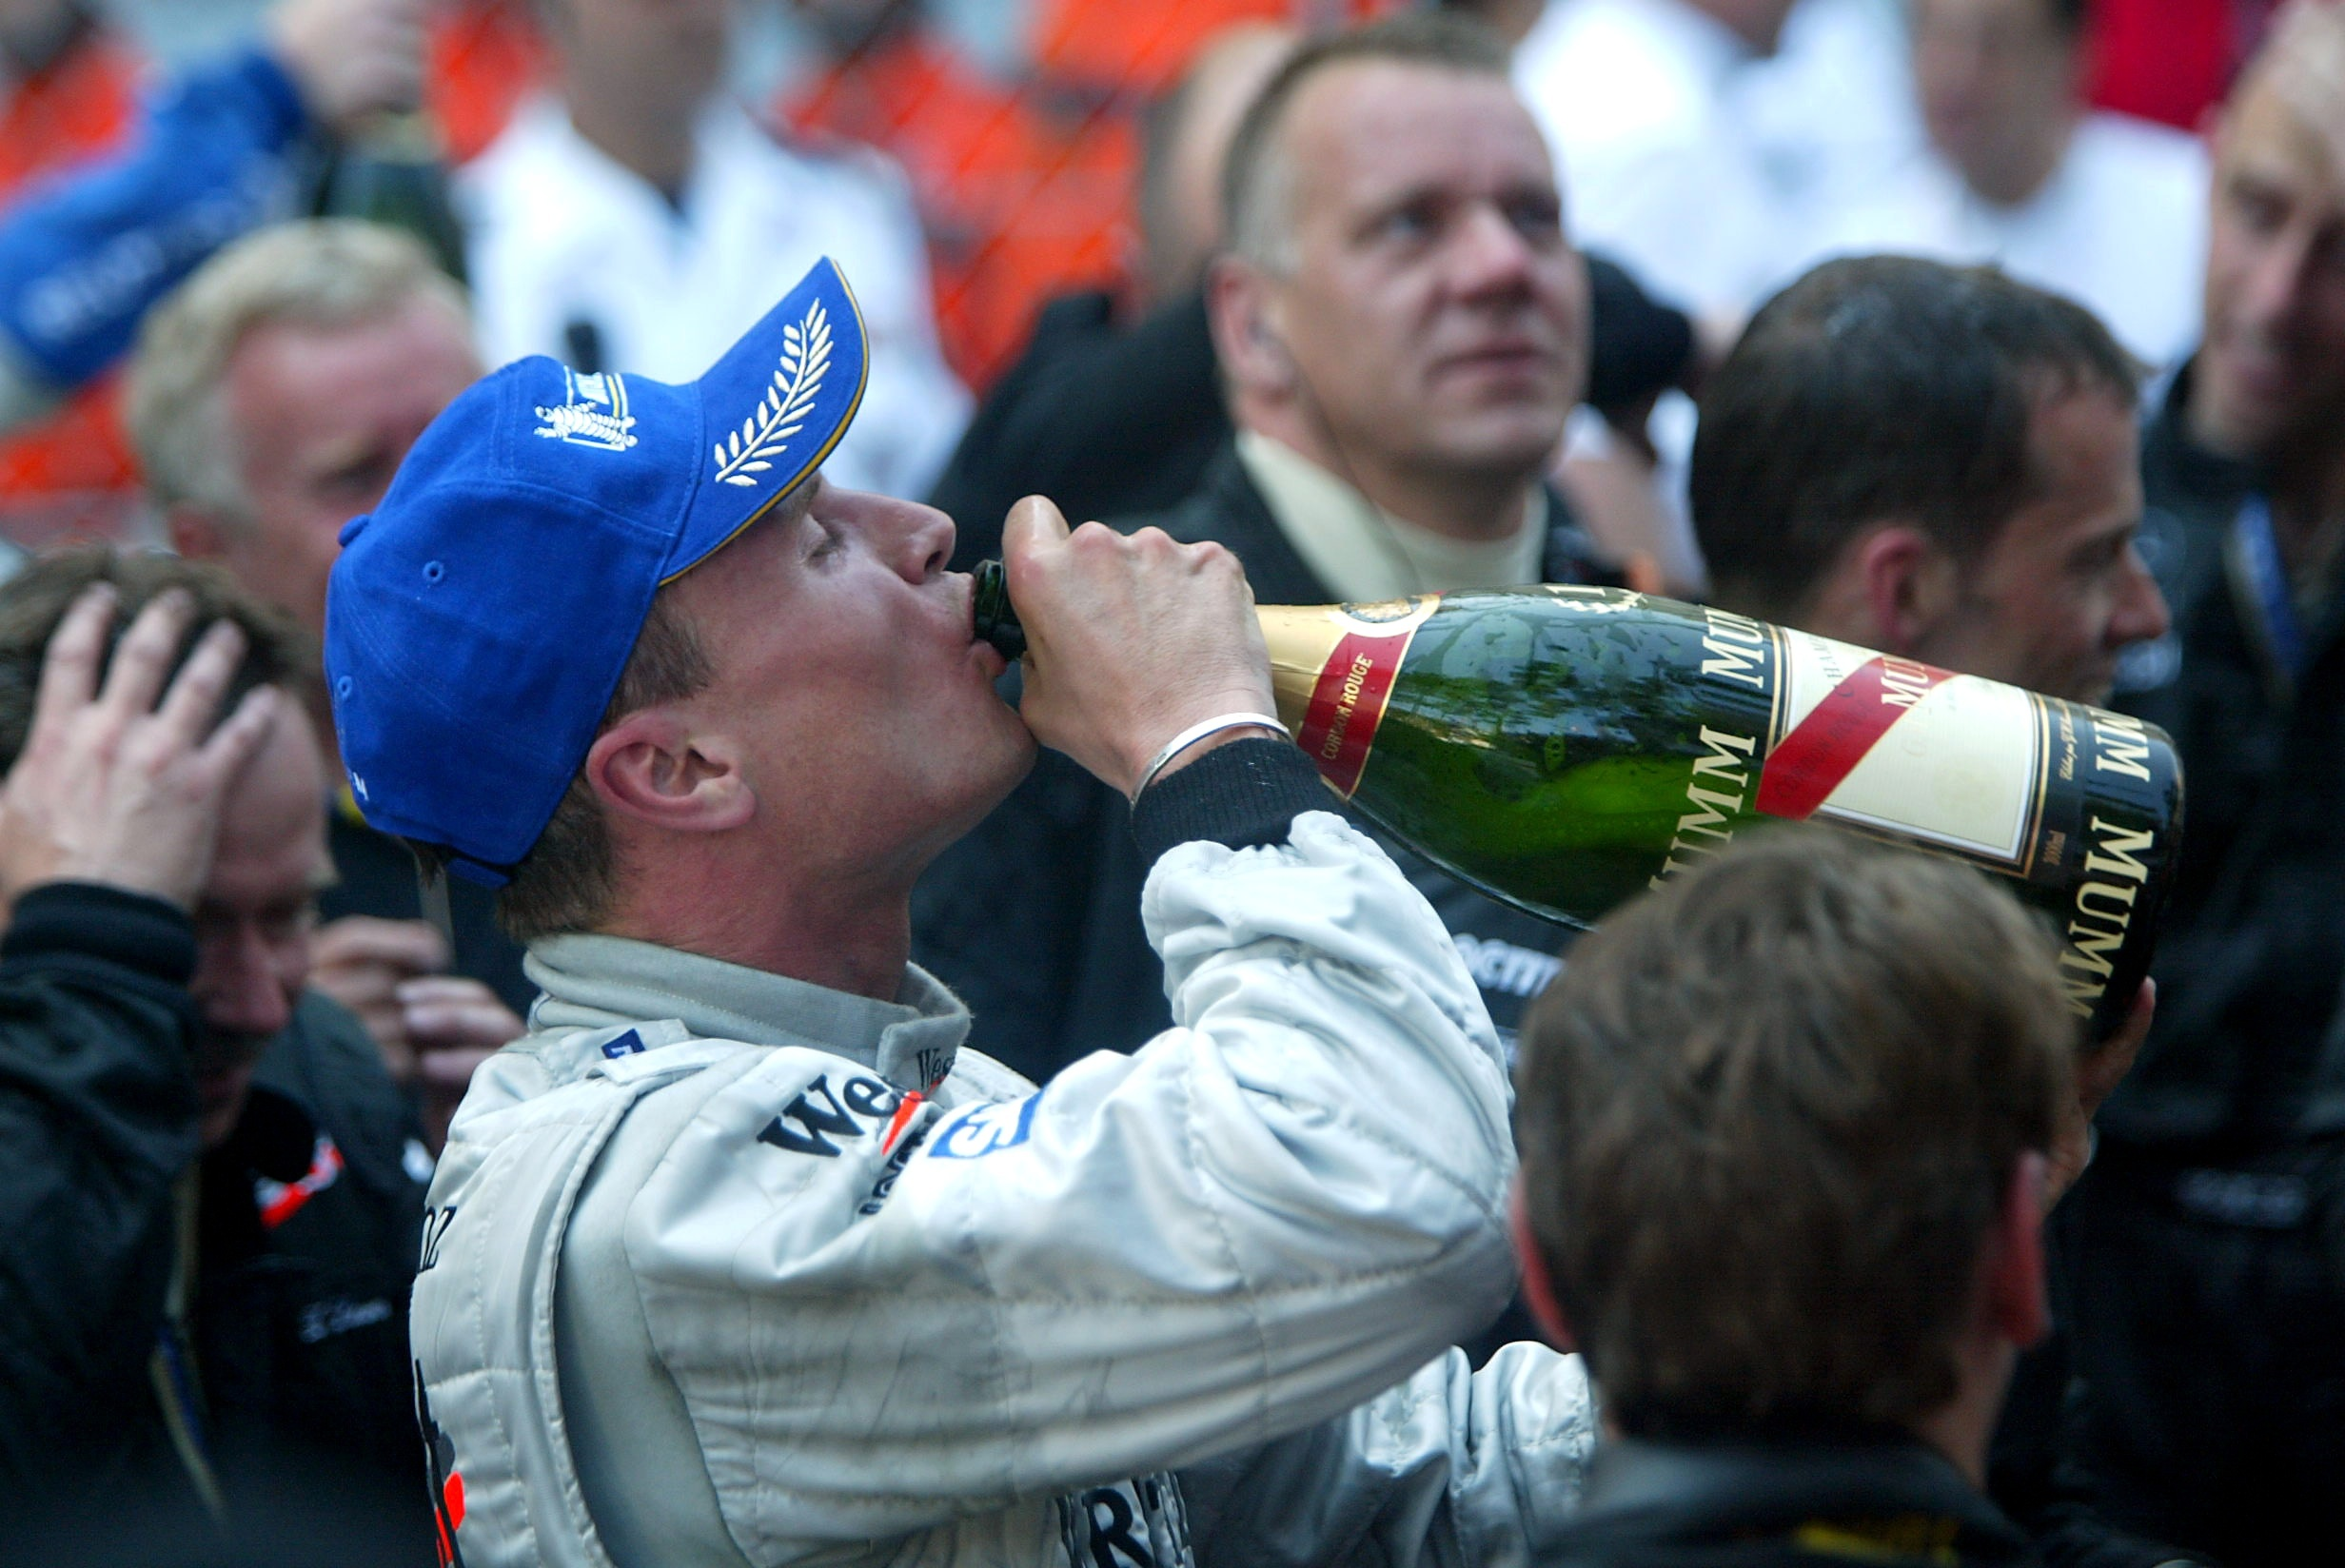 David Coulthard drinking champagne after the Monaco Grand Prix